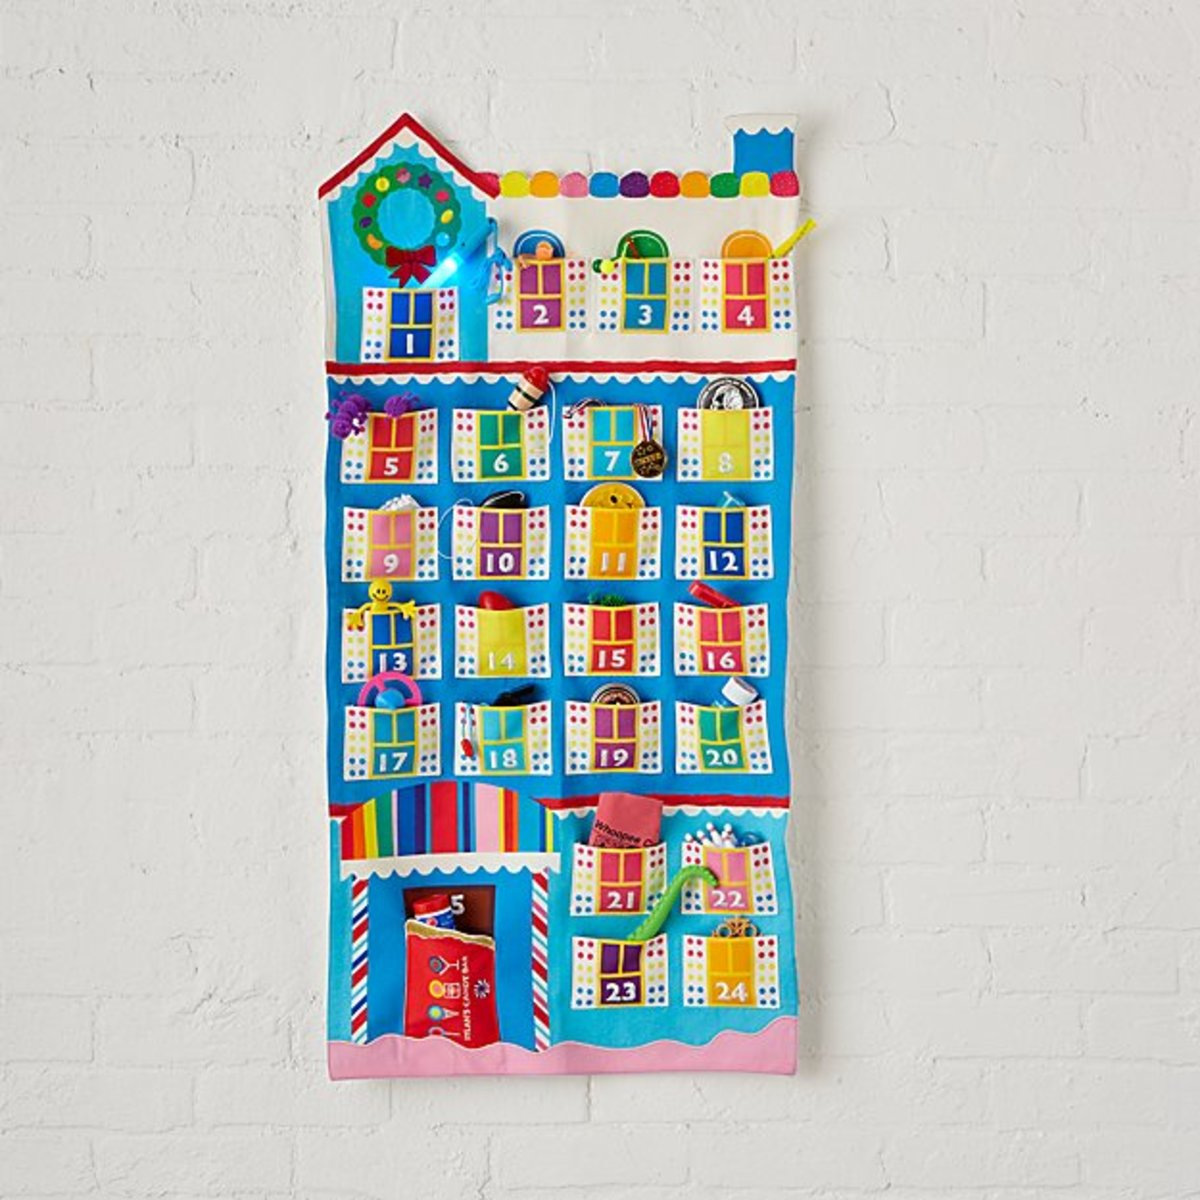 Dylan's Candy Bar Advent Calendar, $81